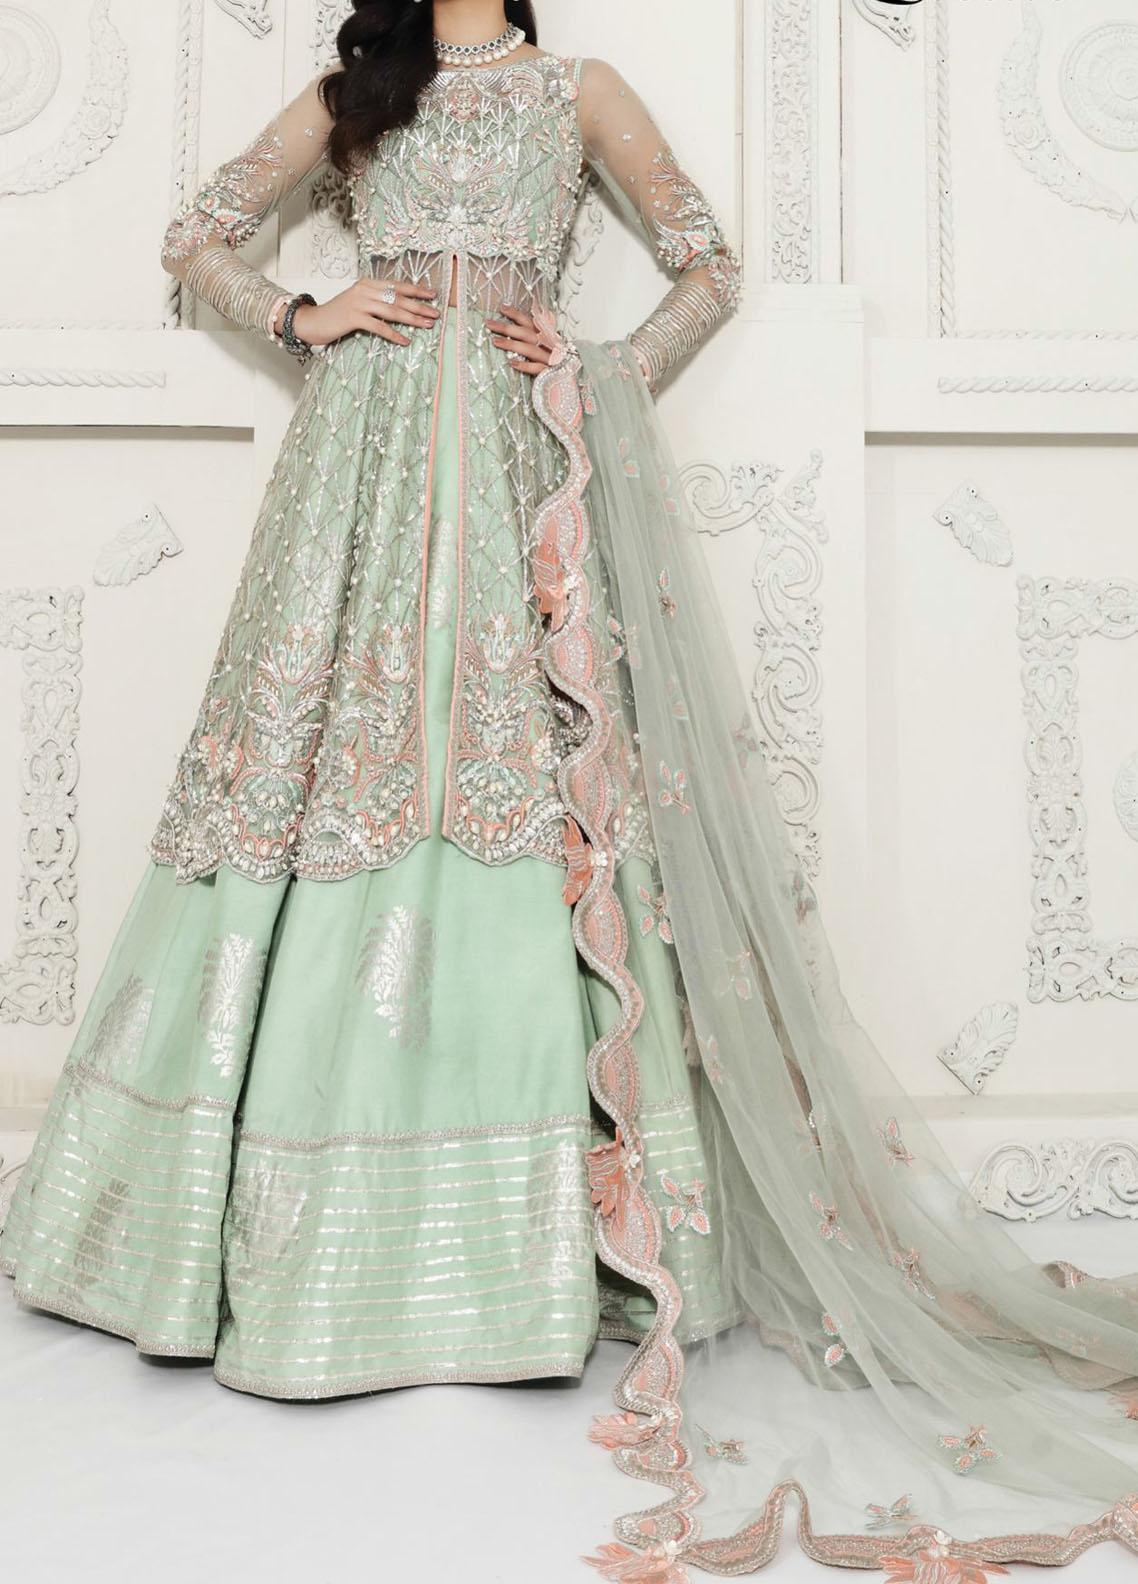 Anaya By Kiran Chaudhry Embroidered Tulle Stitched 3 Piece Suit AKC20B 13 Lucille - Bridal Wear Collection